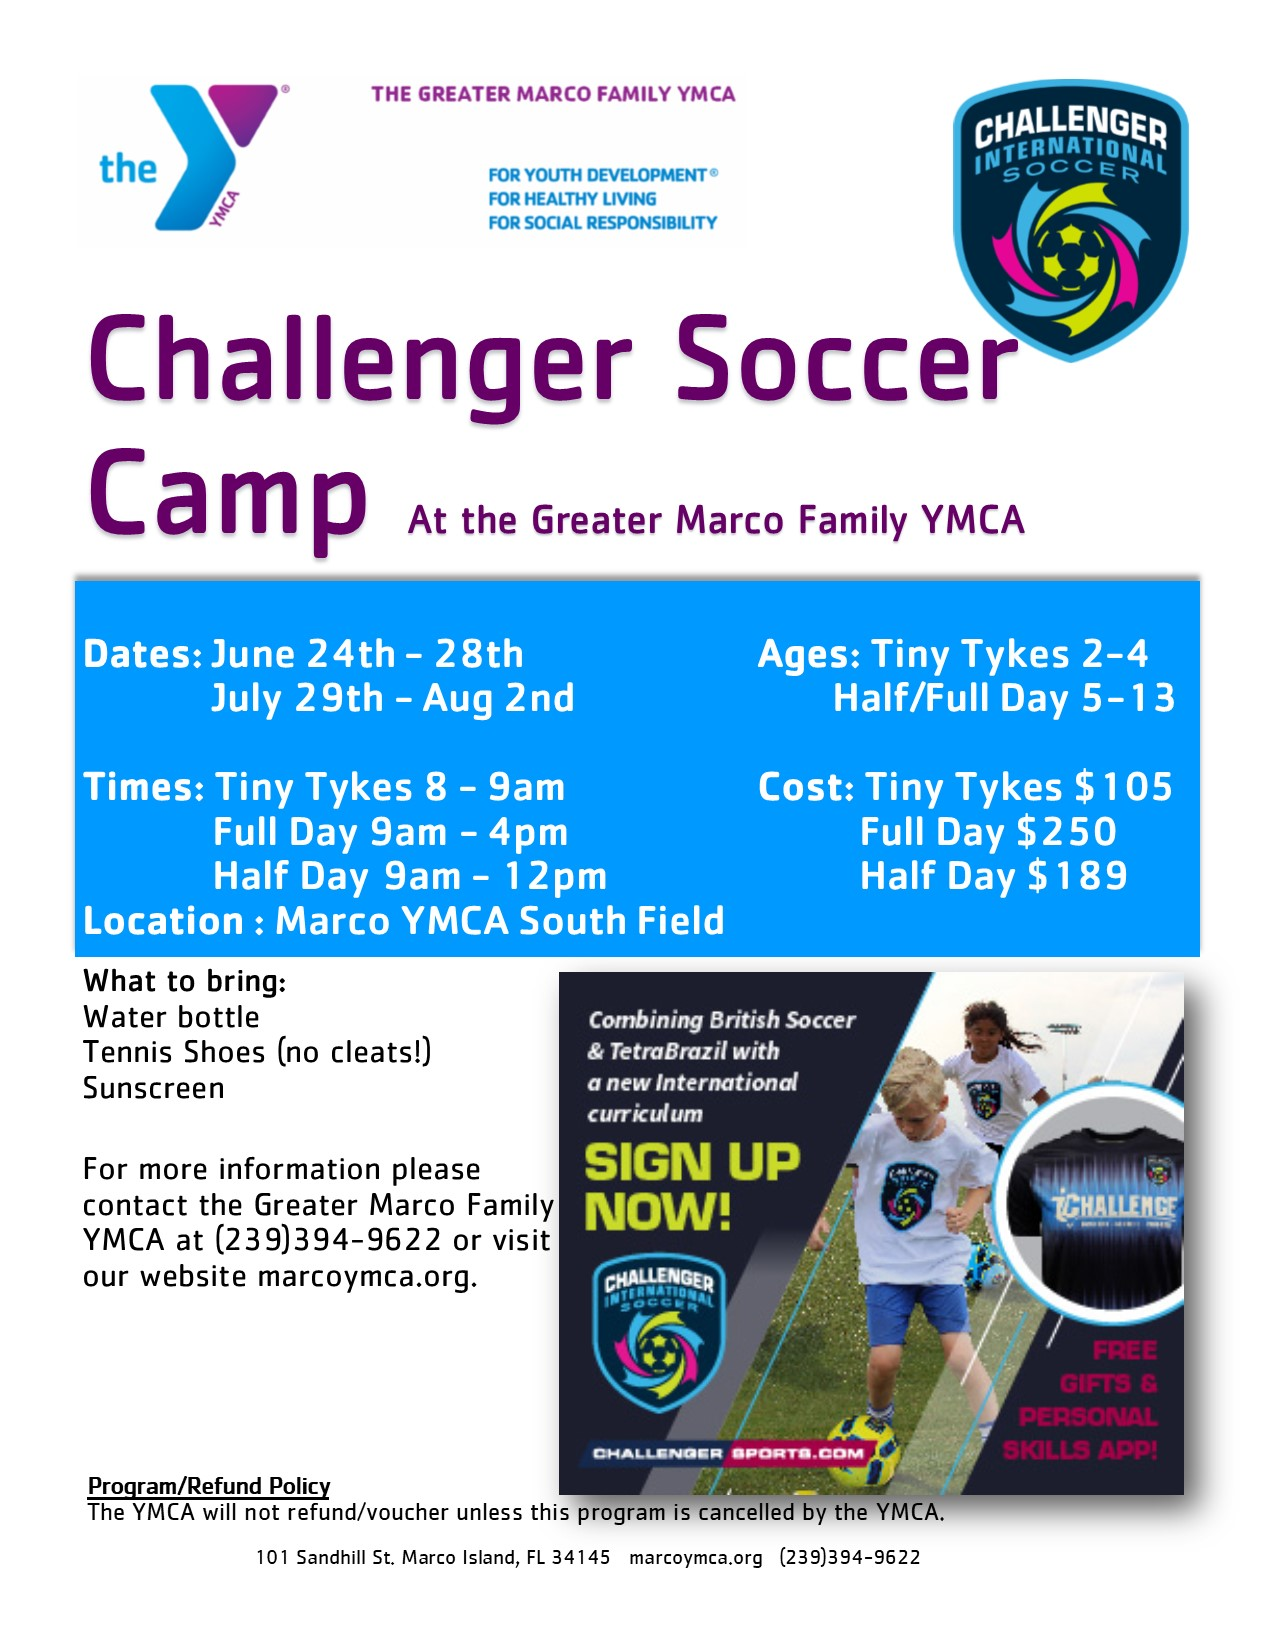 YMCA Challenger Soccer Camp